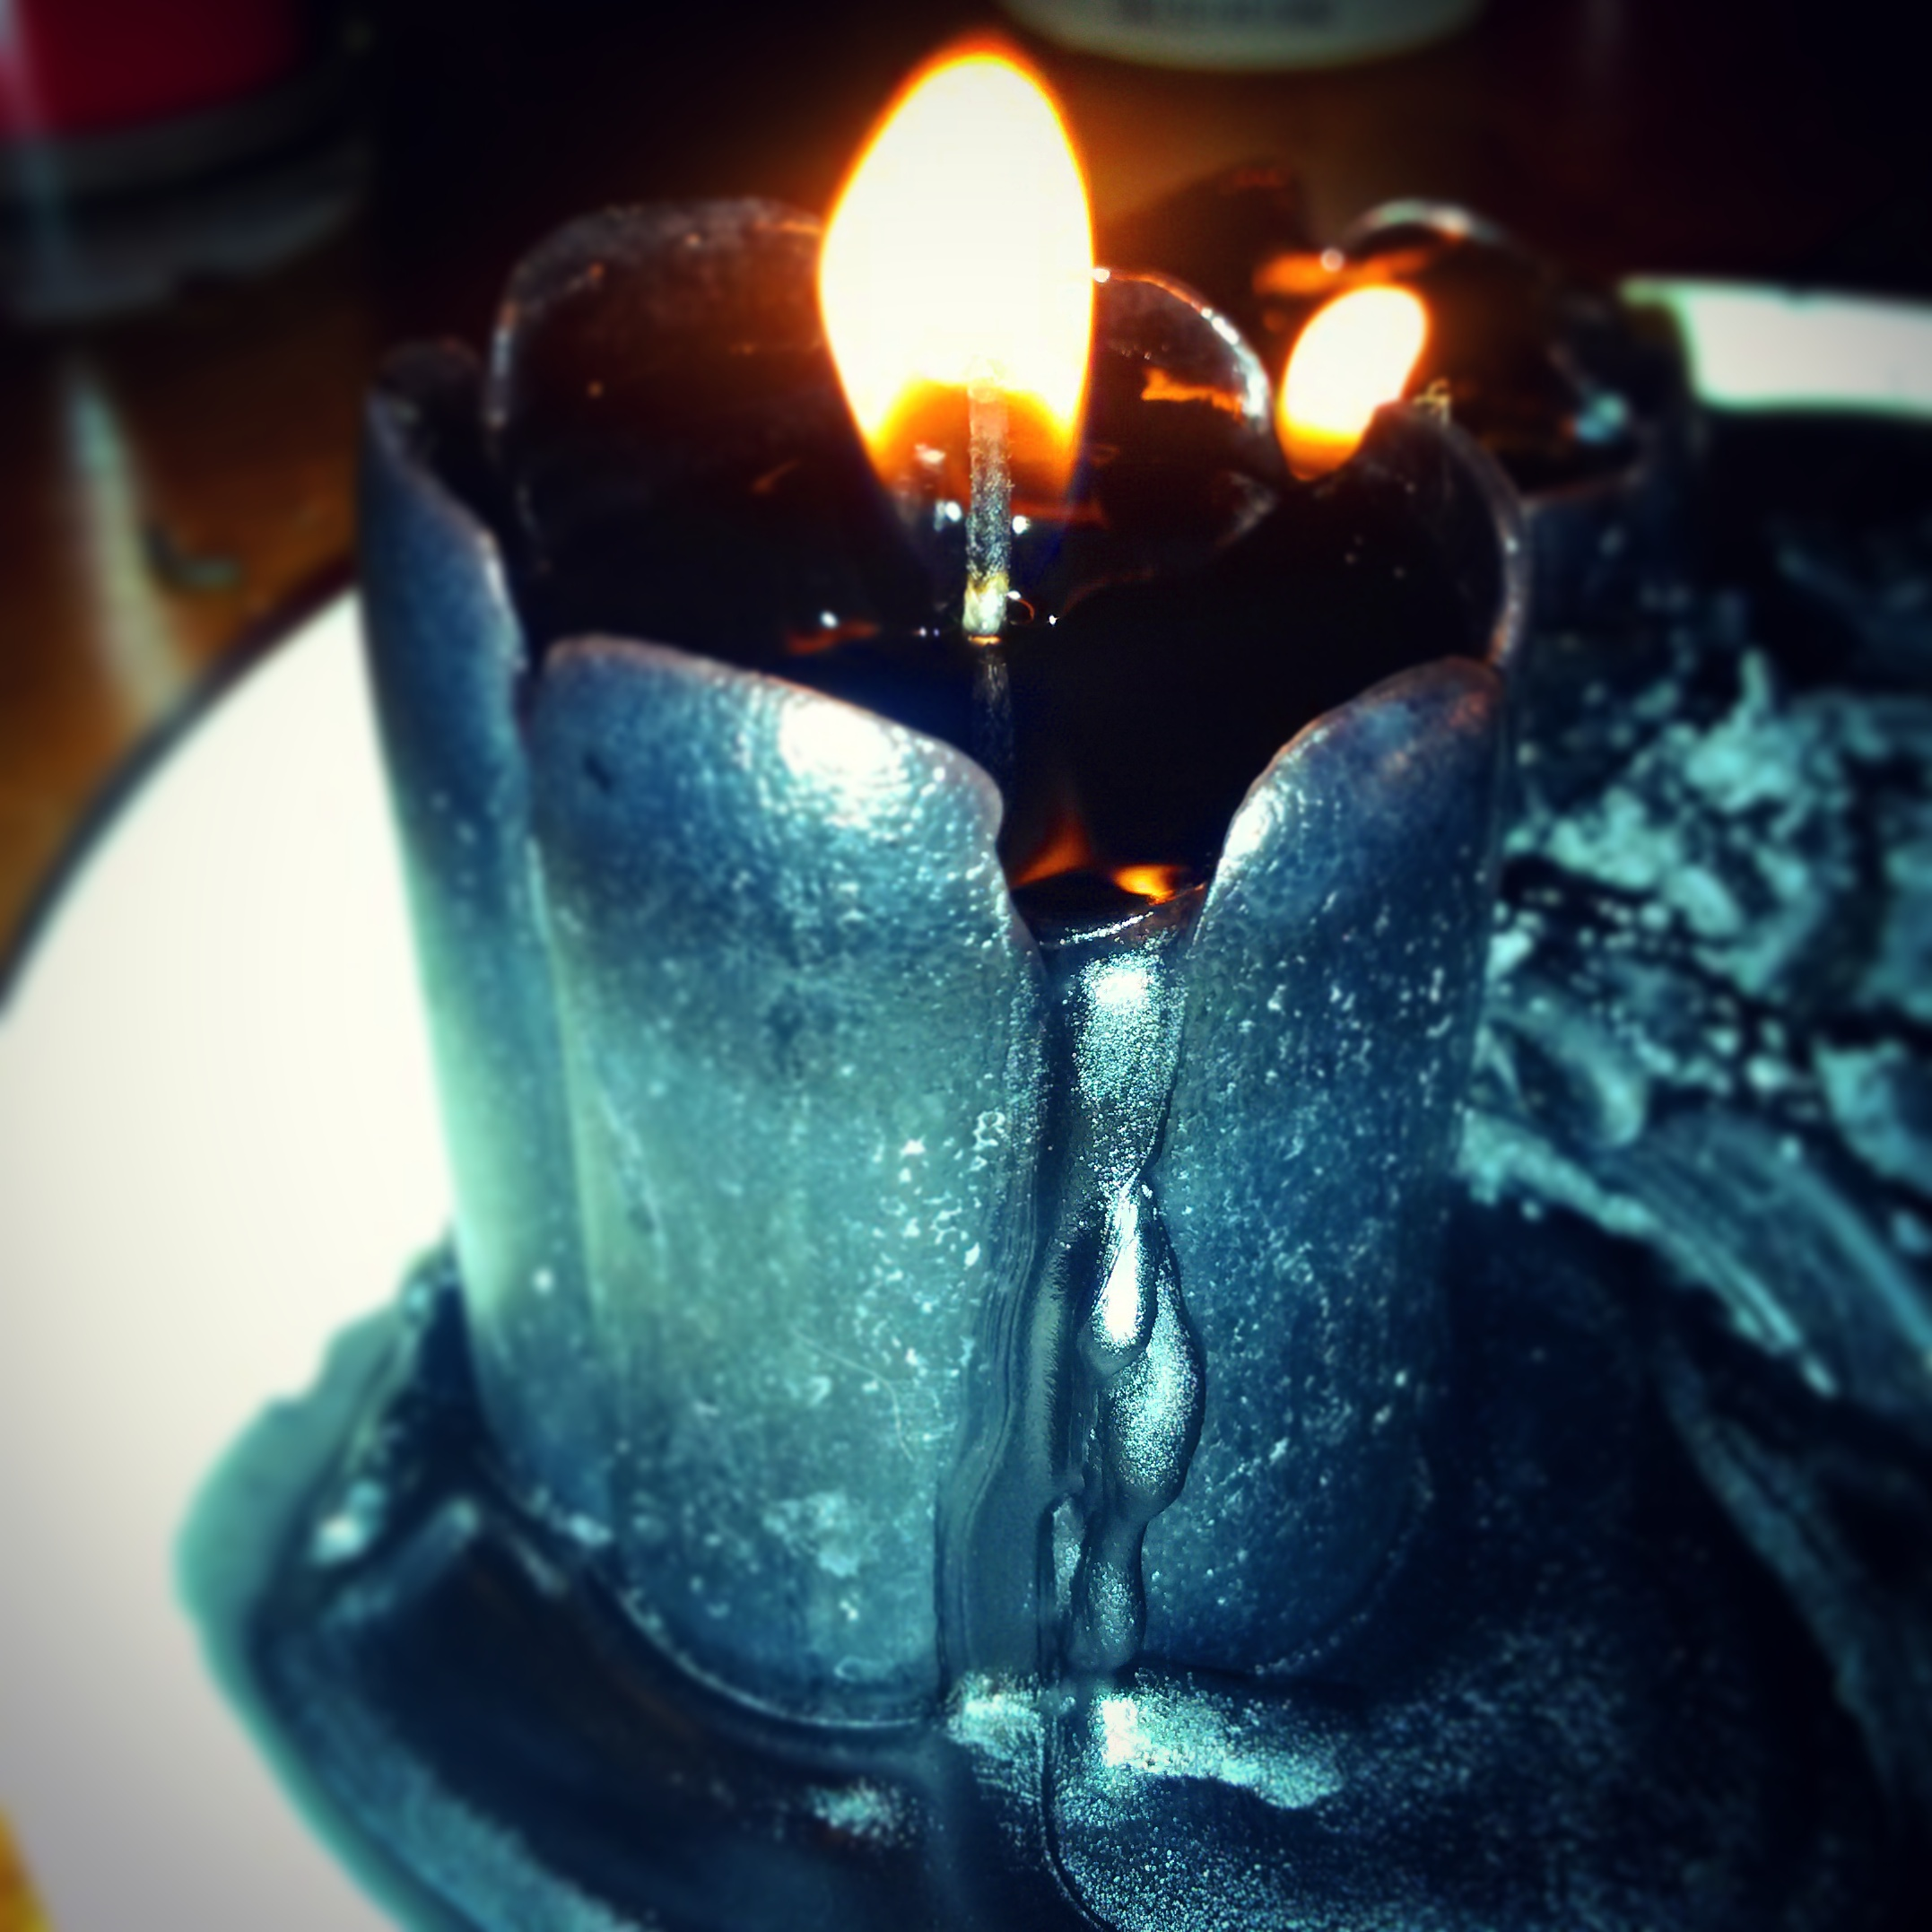 Making homemade candles to sell is fun and easy. You can make  environmentally friendly soy